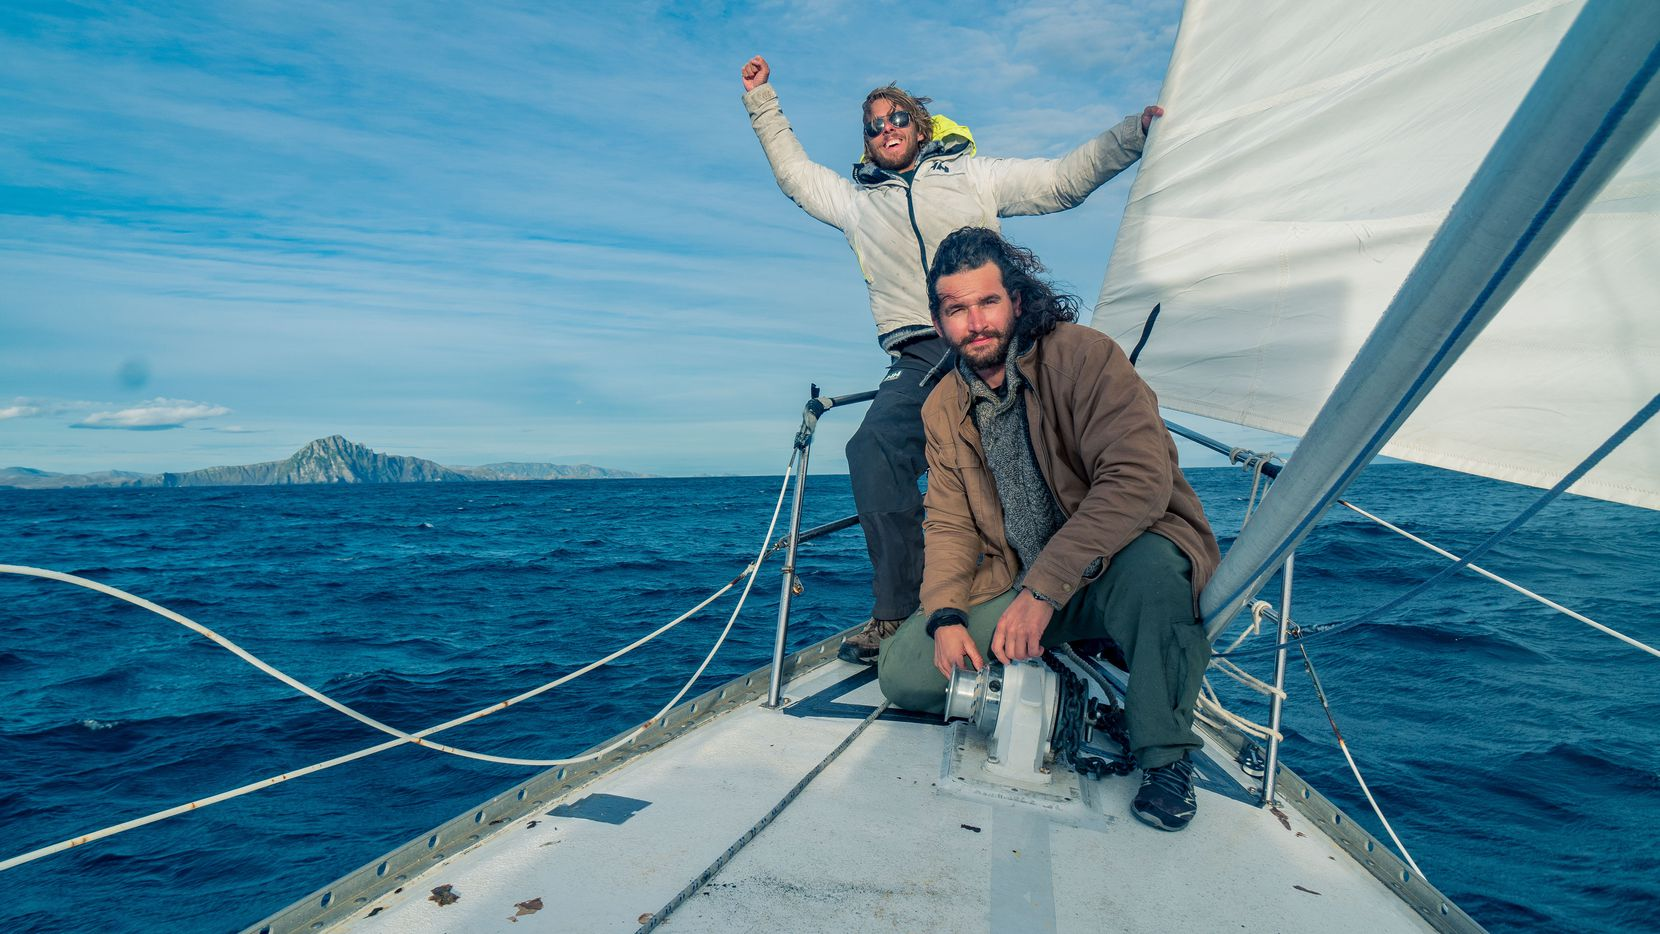 Navy veteran Taylor Grieger (front) and fellow Texan Stephen O'Shea appear in a documentary about their sailing journey to Cape Horn to raise awareness about the mental health crisis among military personnel and veterans.